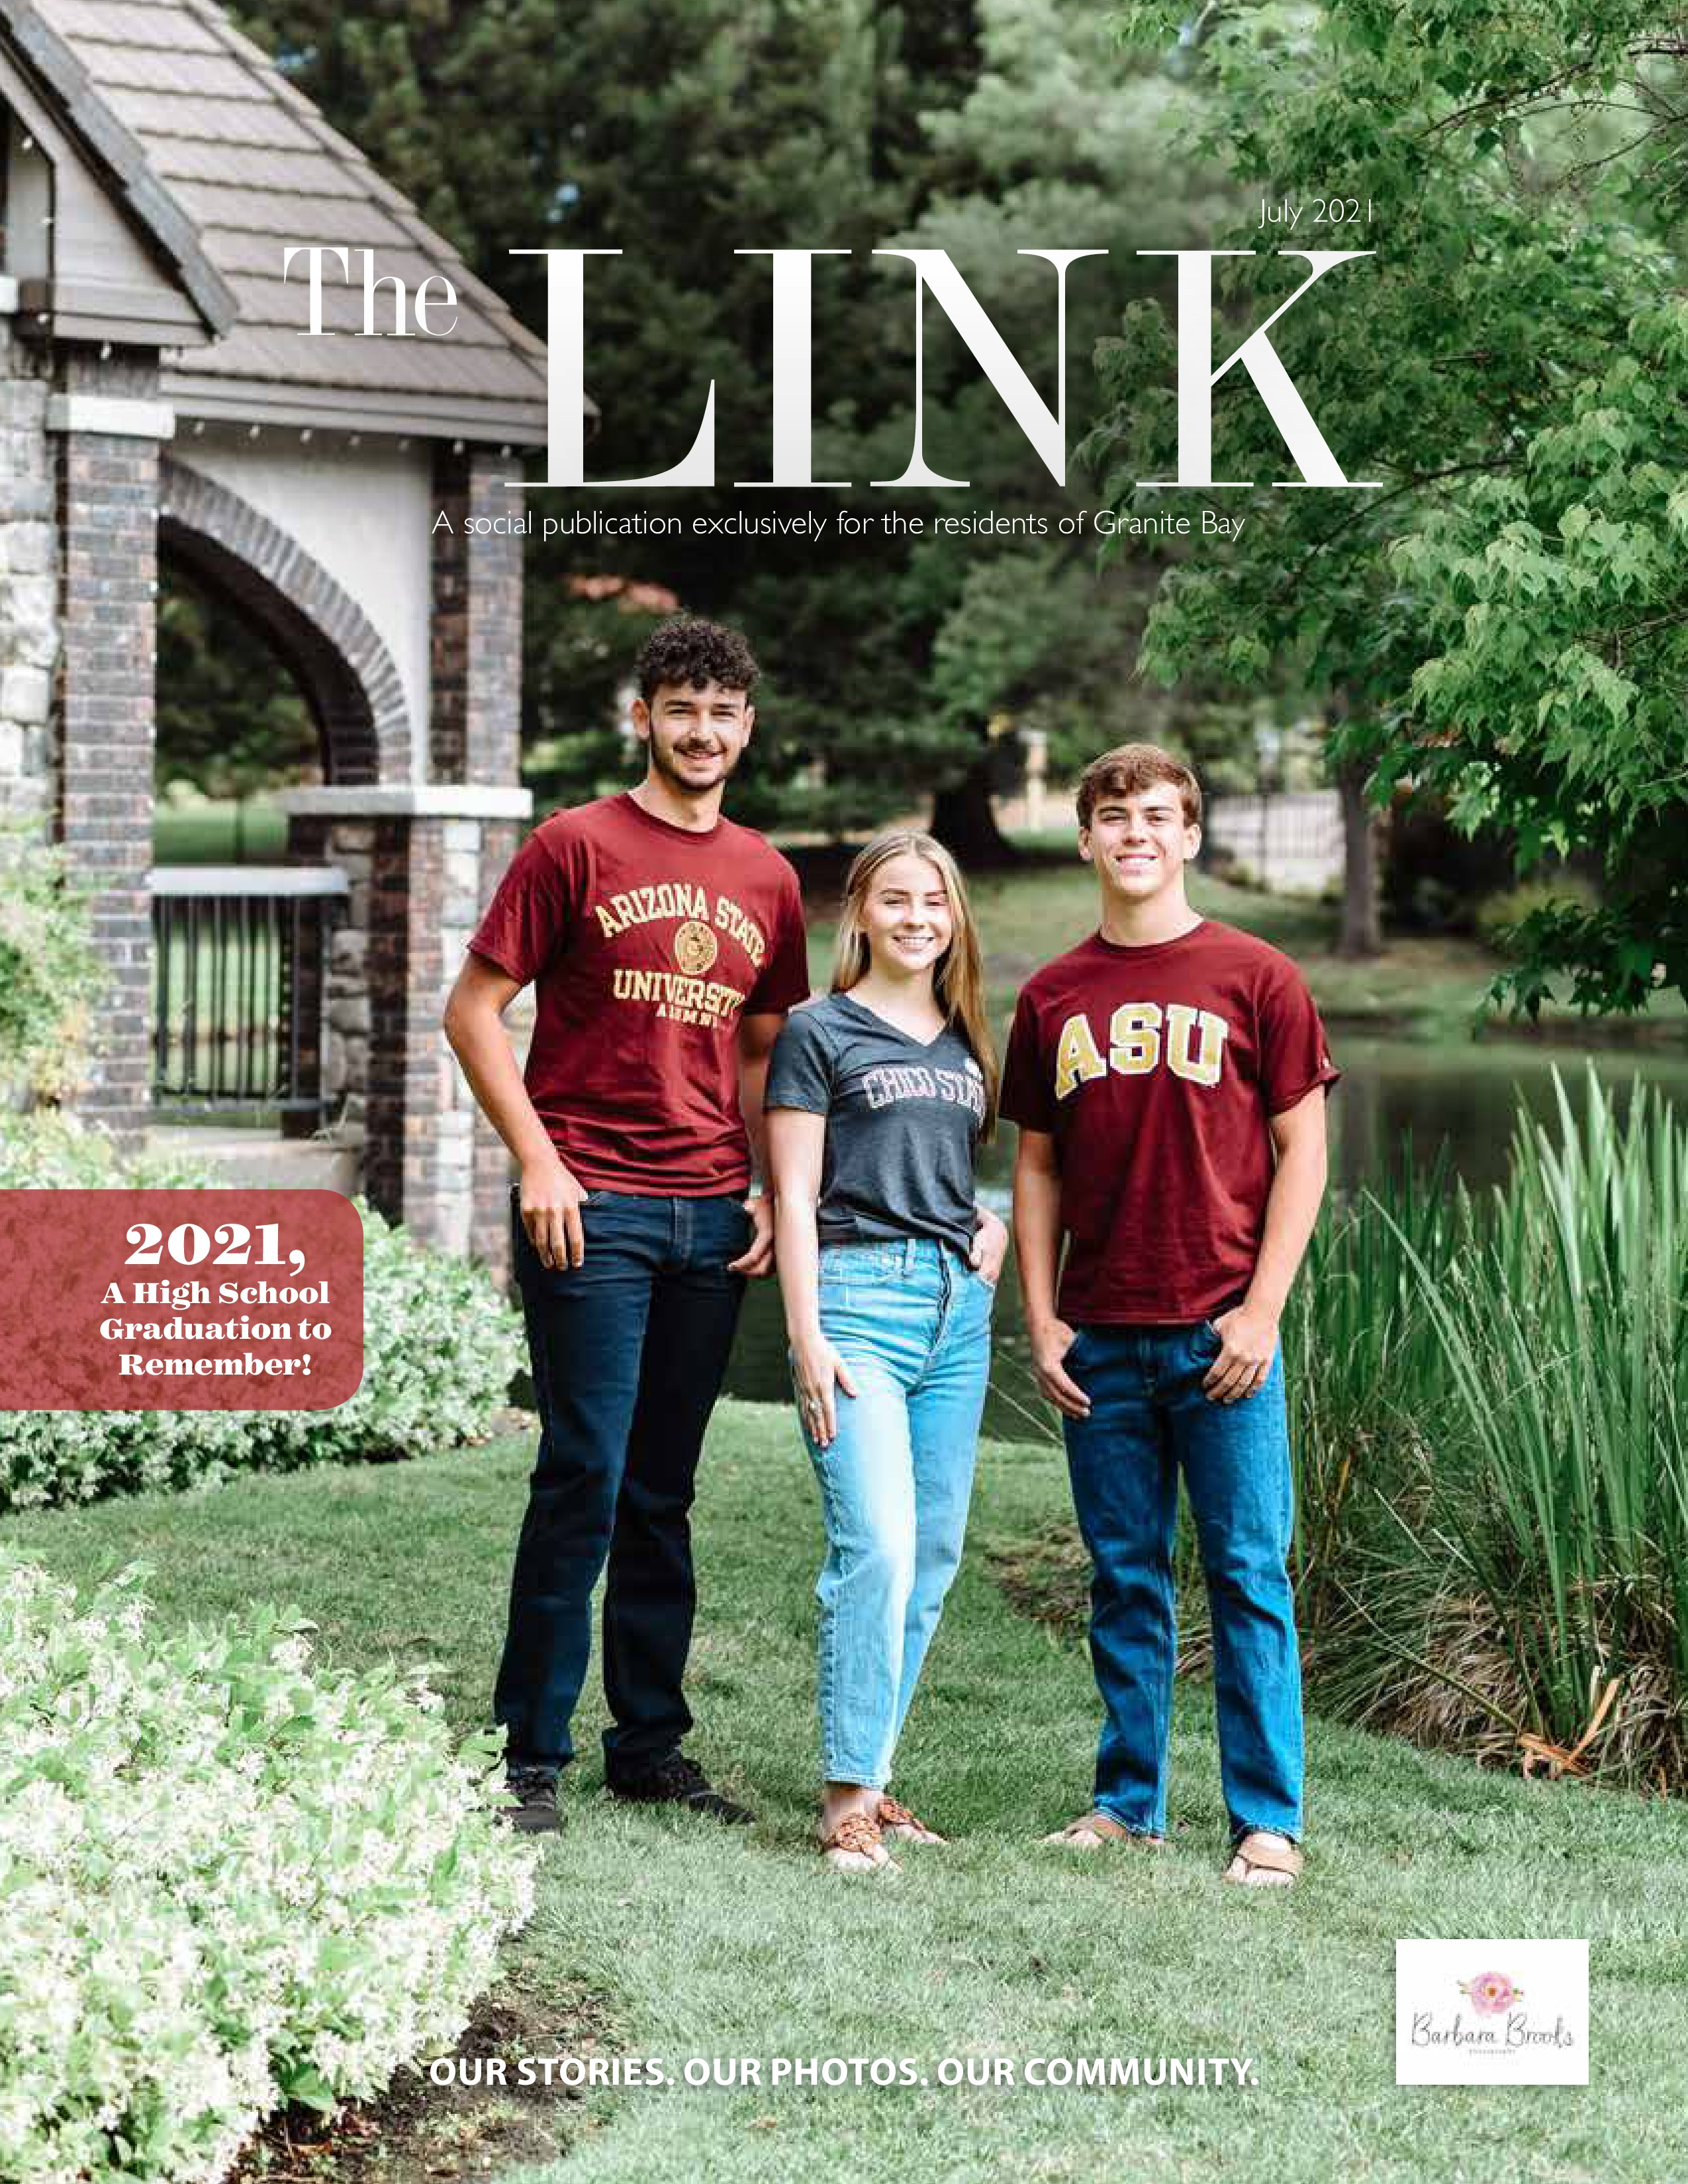 The Link 2021-07-01